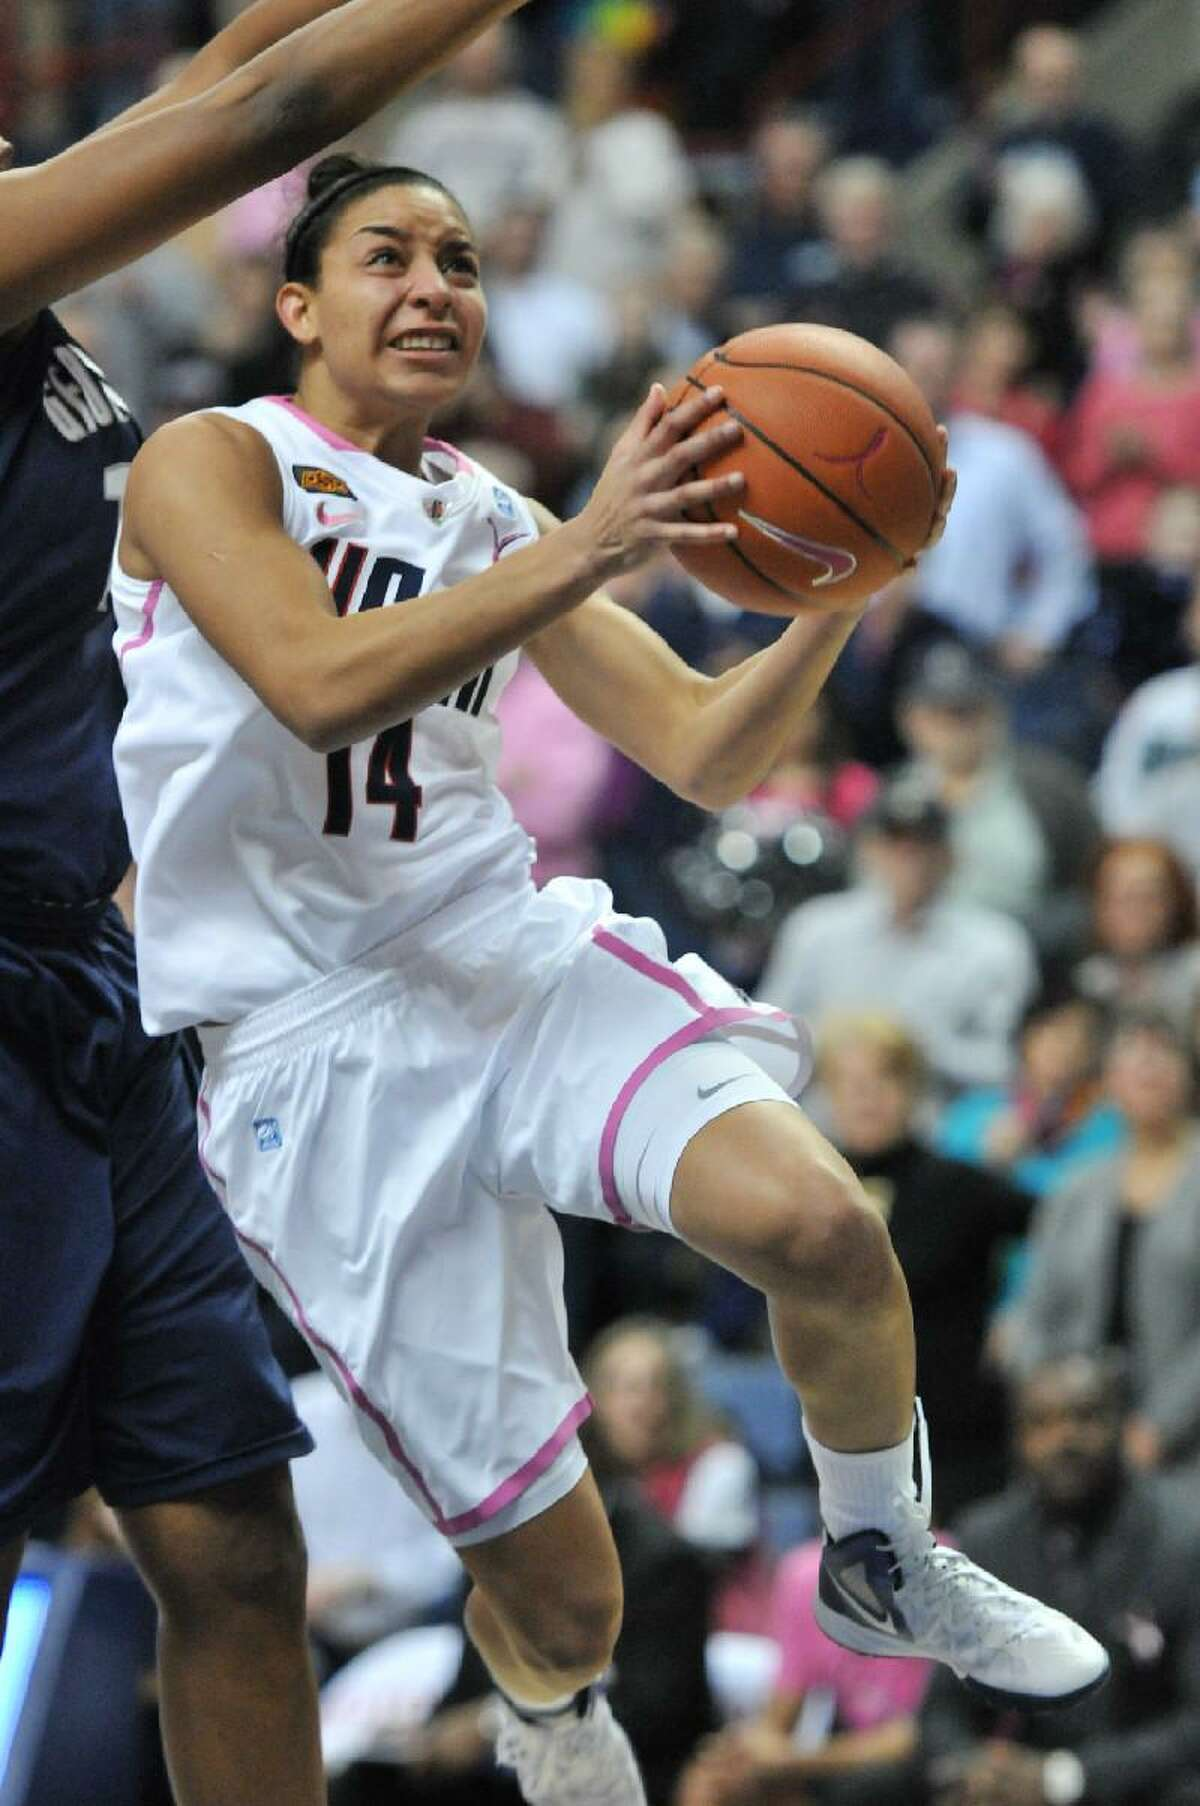 ASSOCIATED PRESS Connecticut's Bria Hartley makes her move to the basket during Saturday's game against Georgetown at Gampel Pavilion in Storrs. The Huskies won 80-38 to extend their home winning streak to 99 straight homes.